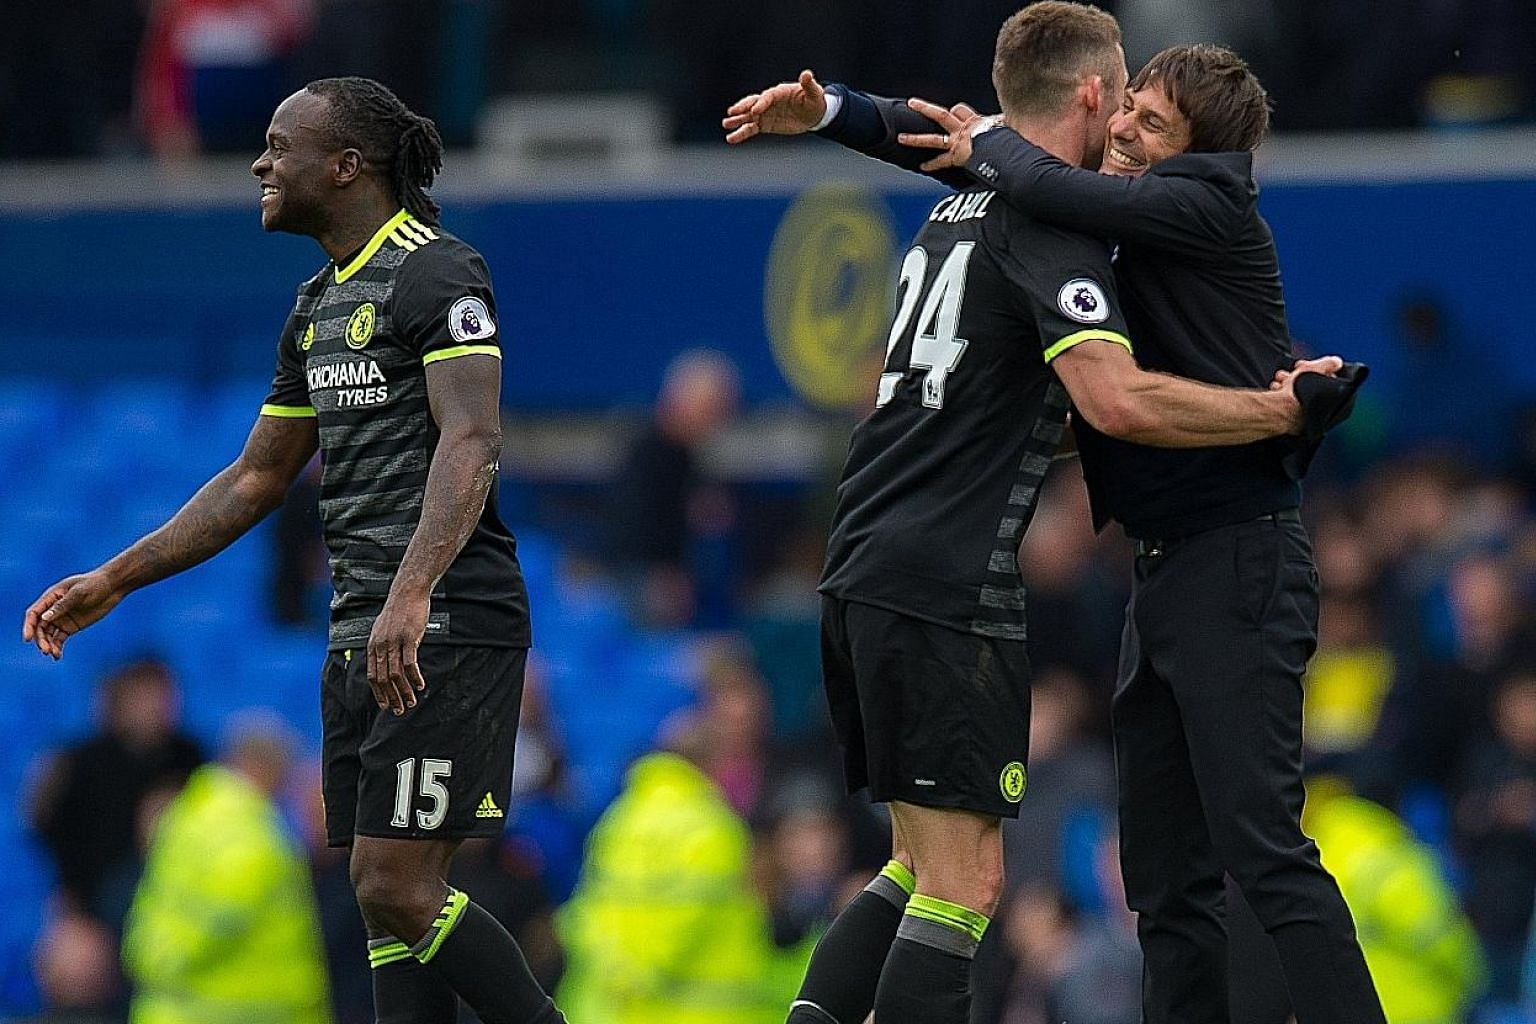 Smiles all around as Chelsea manager Antonio Conte (right) congratulates Gary Cahill (centre) and Victor Moses after their 3-0 victory over Everton at Goodison Park. The hard-fought win means they have beaten the most difficult team left in their sea